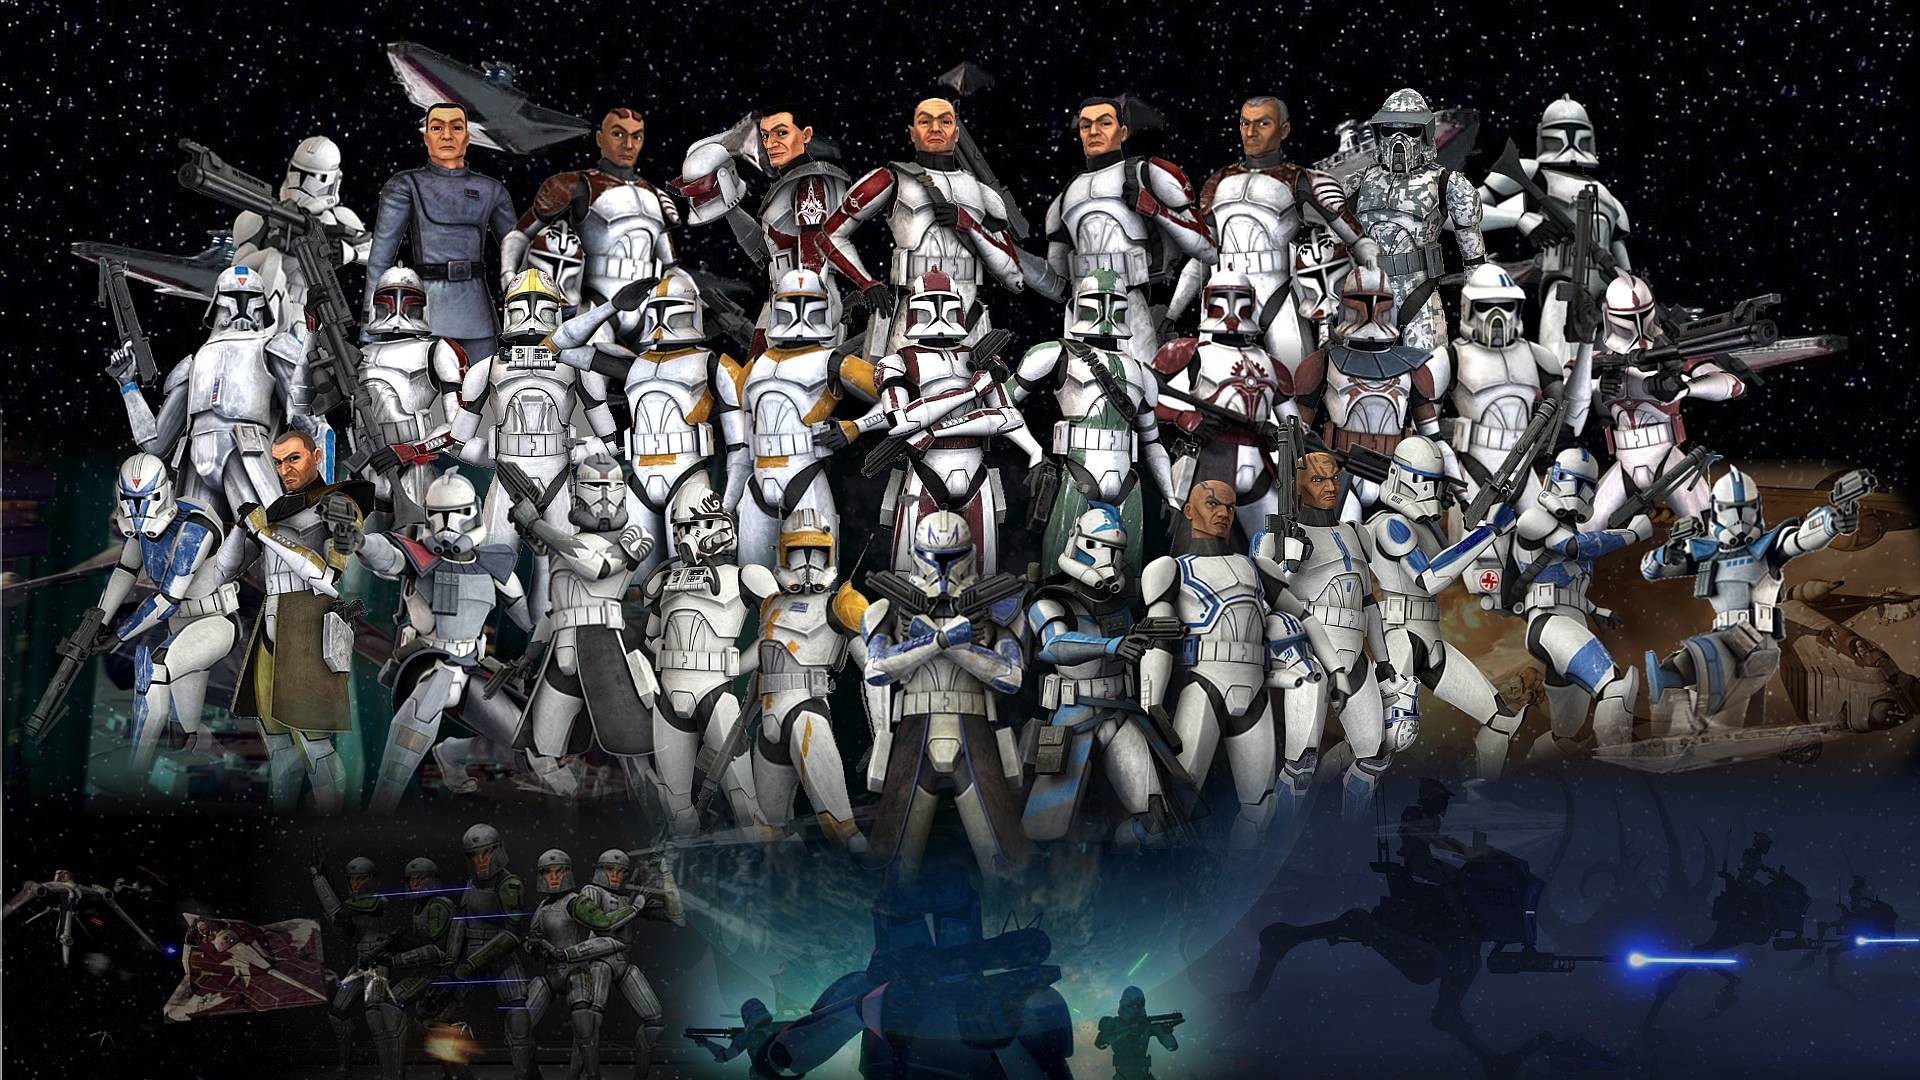 Star Wars The Clone Wars Wallpaper Hd , HD Wallpaper & Backgrounds